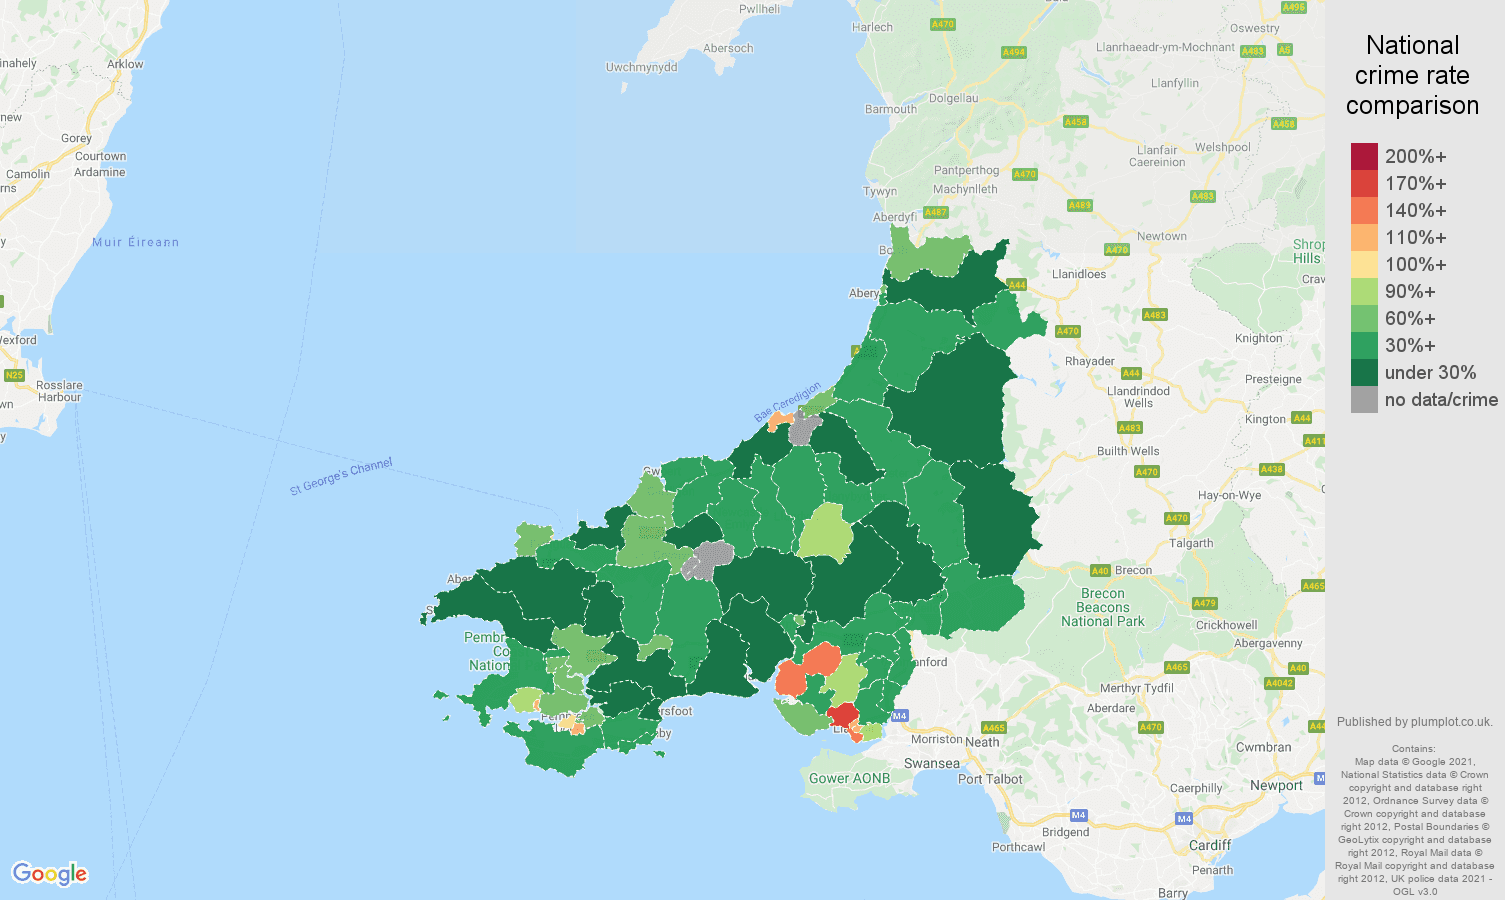 Dyfed burglary crime rate comparison map